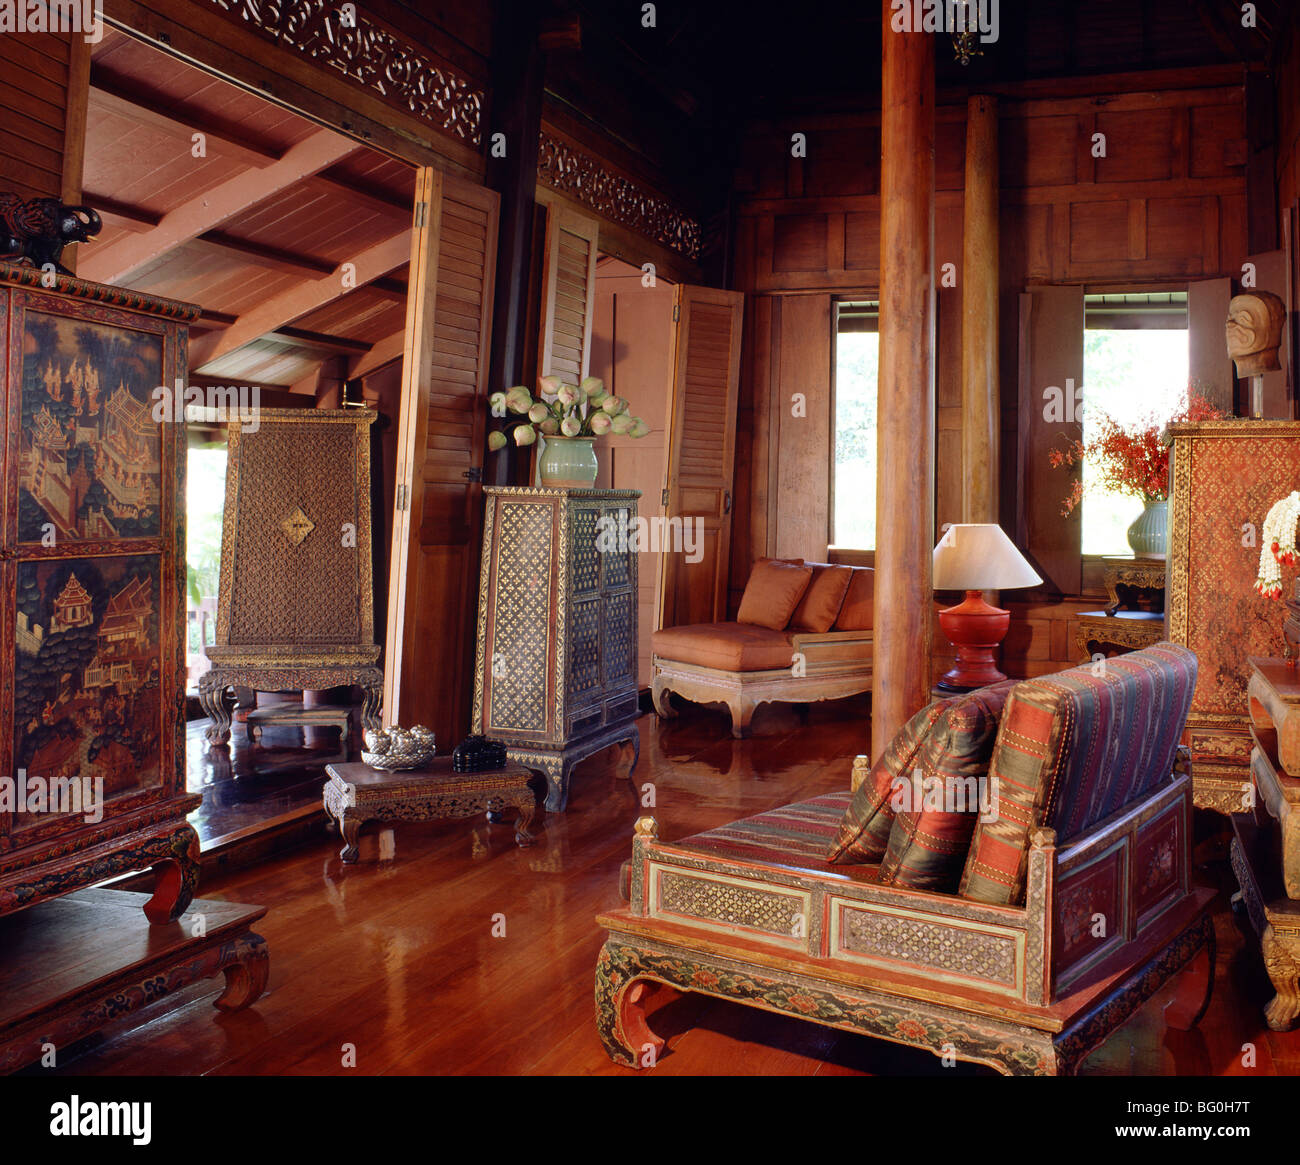 Home Design Thailand: Traditional Thai House With Old Manuscript Cabinet, Table